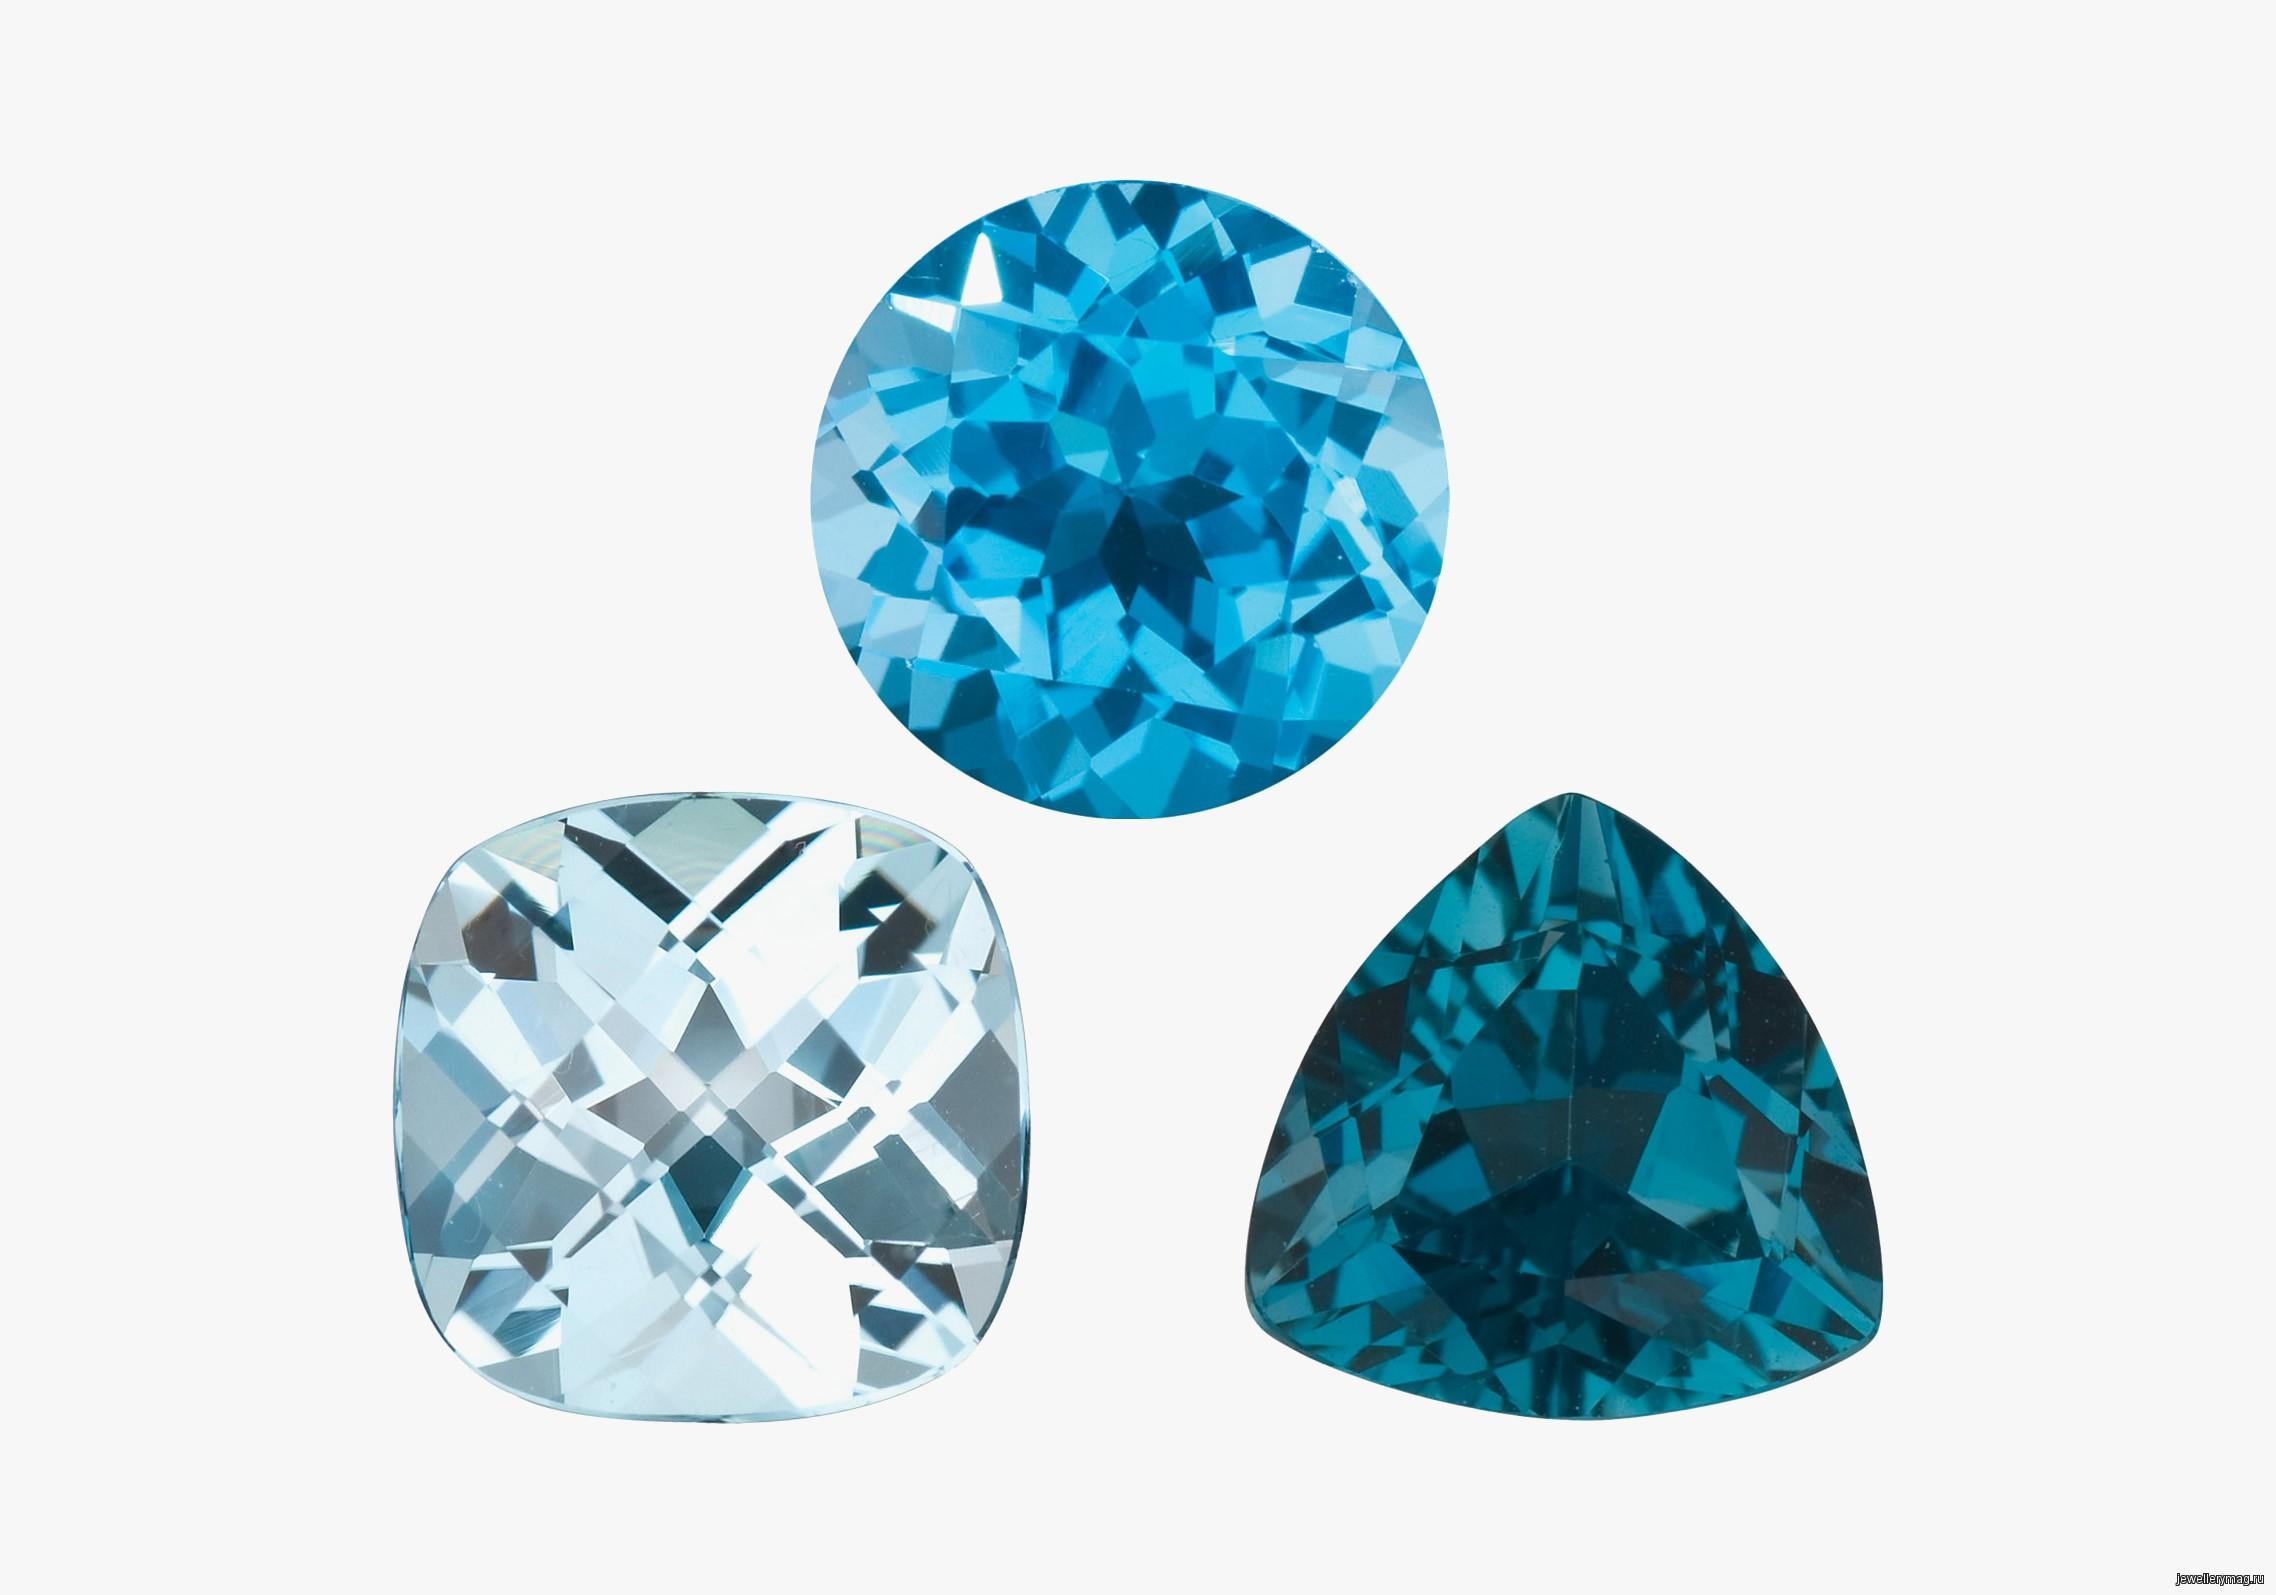 jewellerymag ru cover blue topaz - Ювелирная астроминералогия: как выбрать украшение по знаку зодиака?